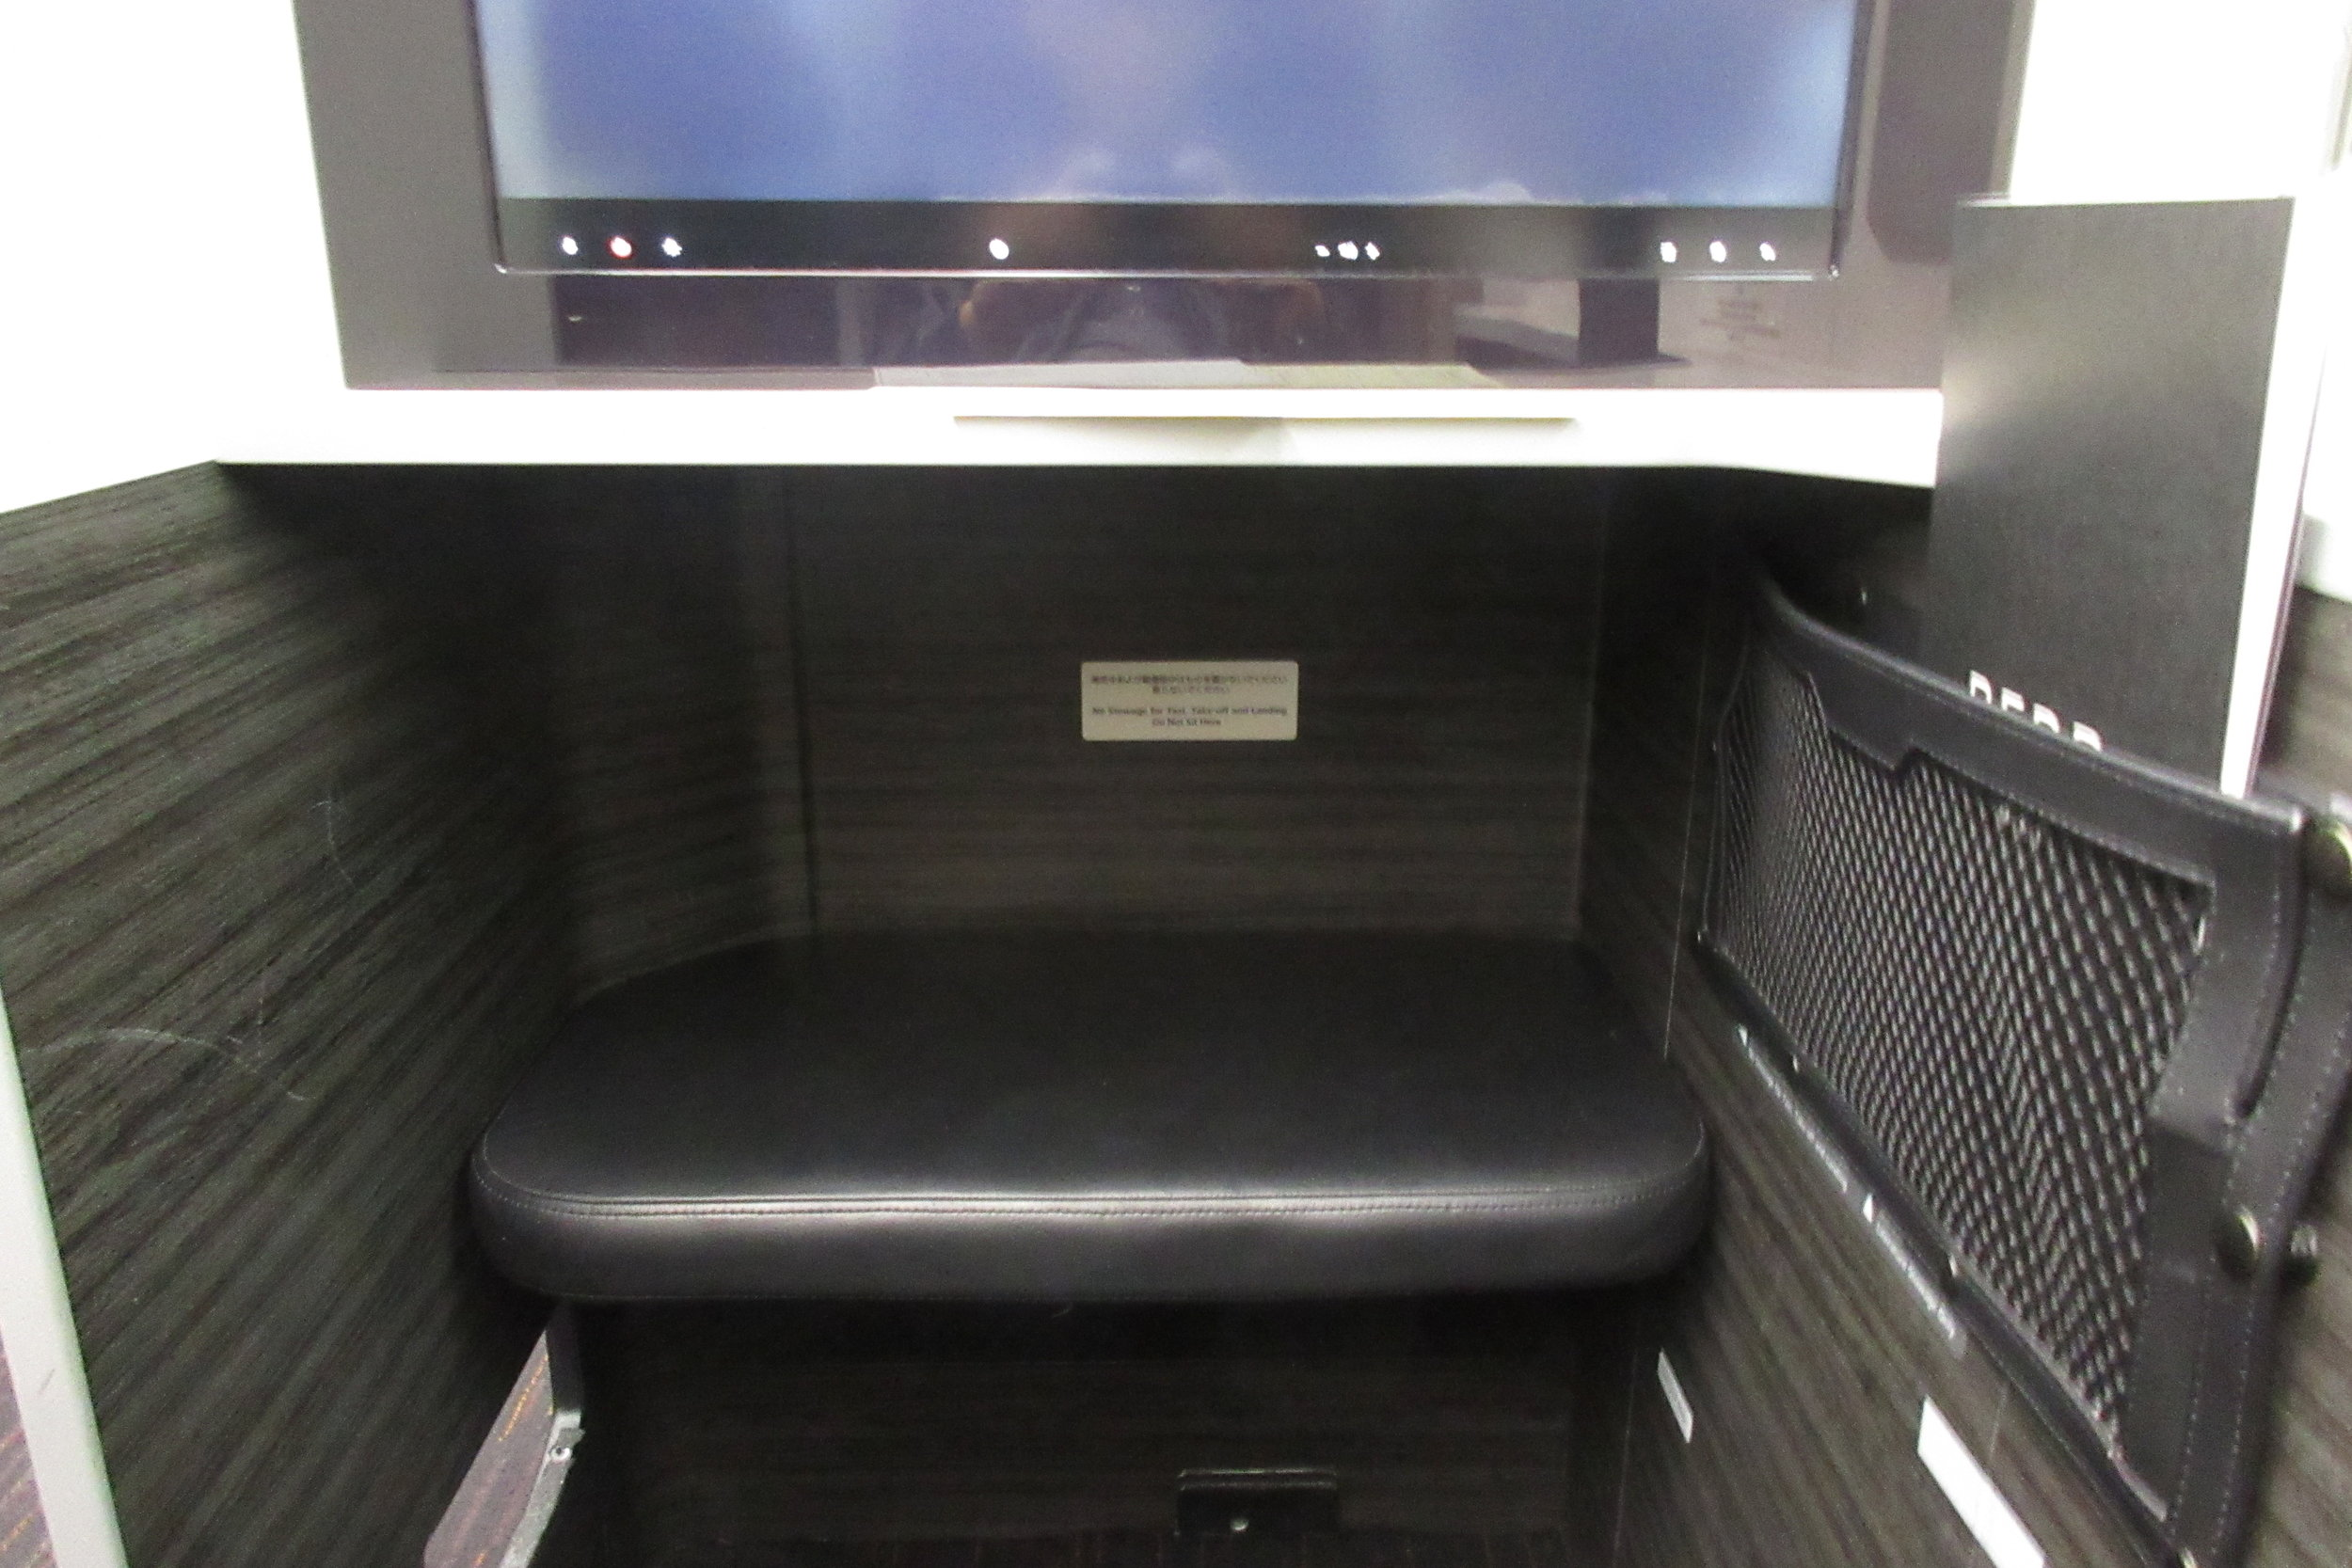 Japan Airlines business class – Leg rest and storage space